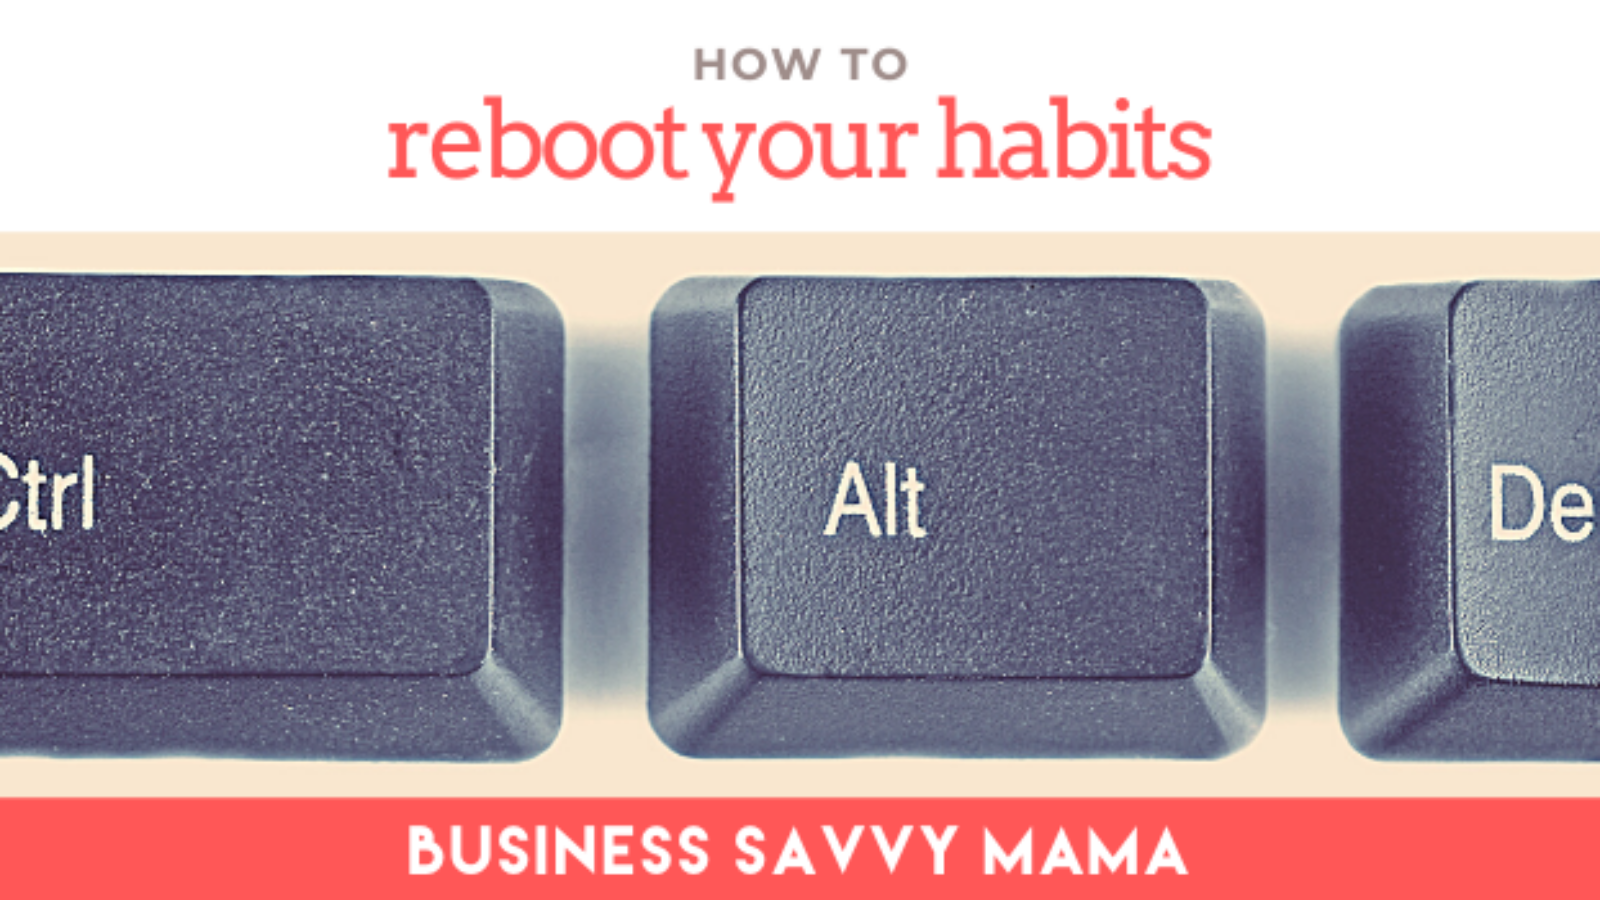 Reboot Your Habits - Business Savvy Mama Podcast